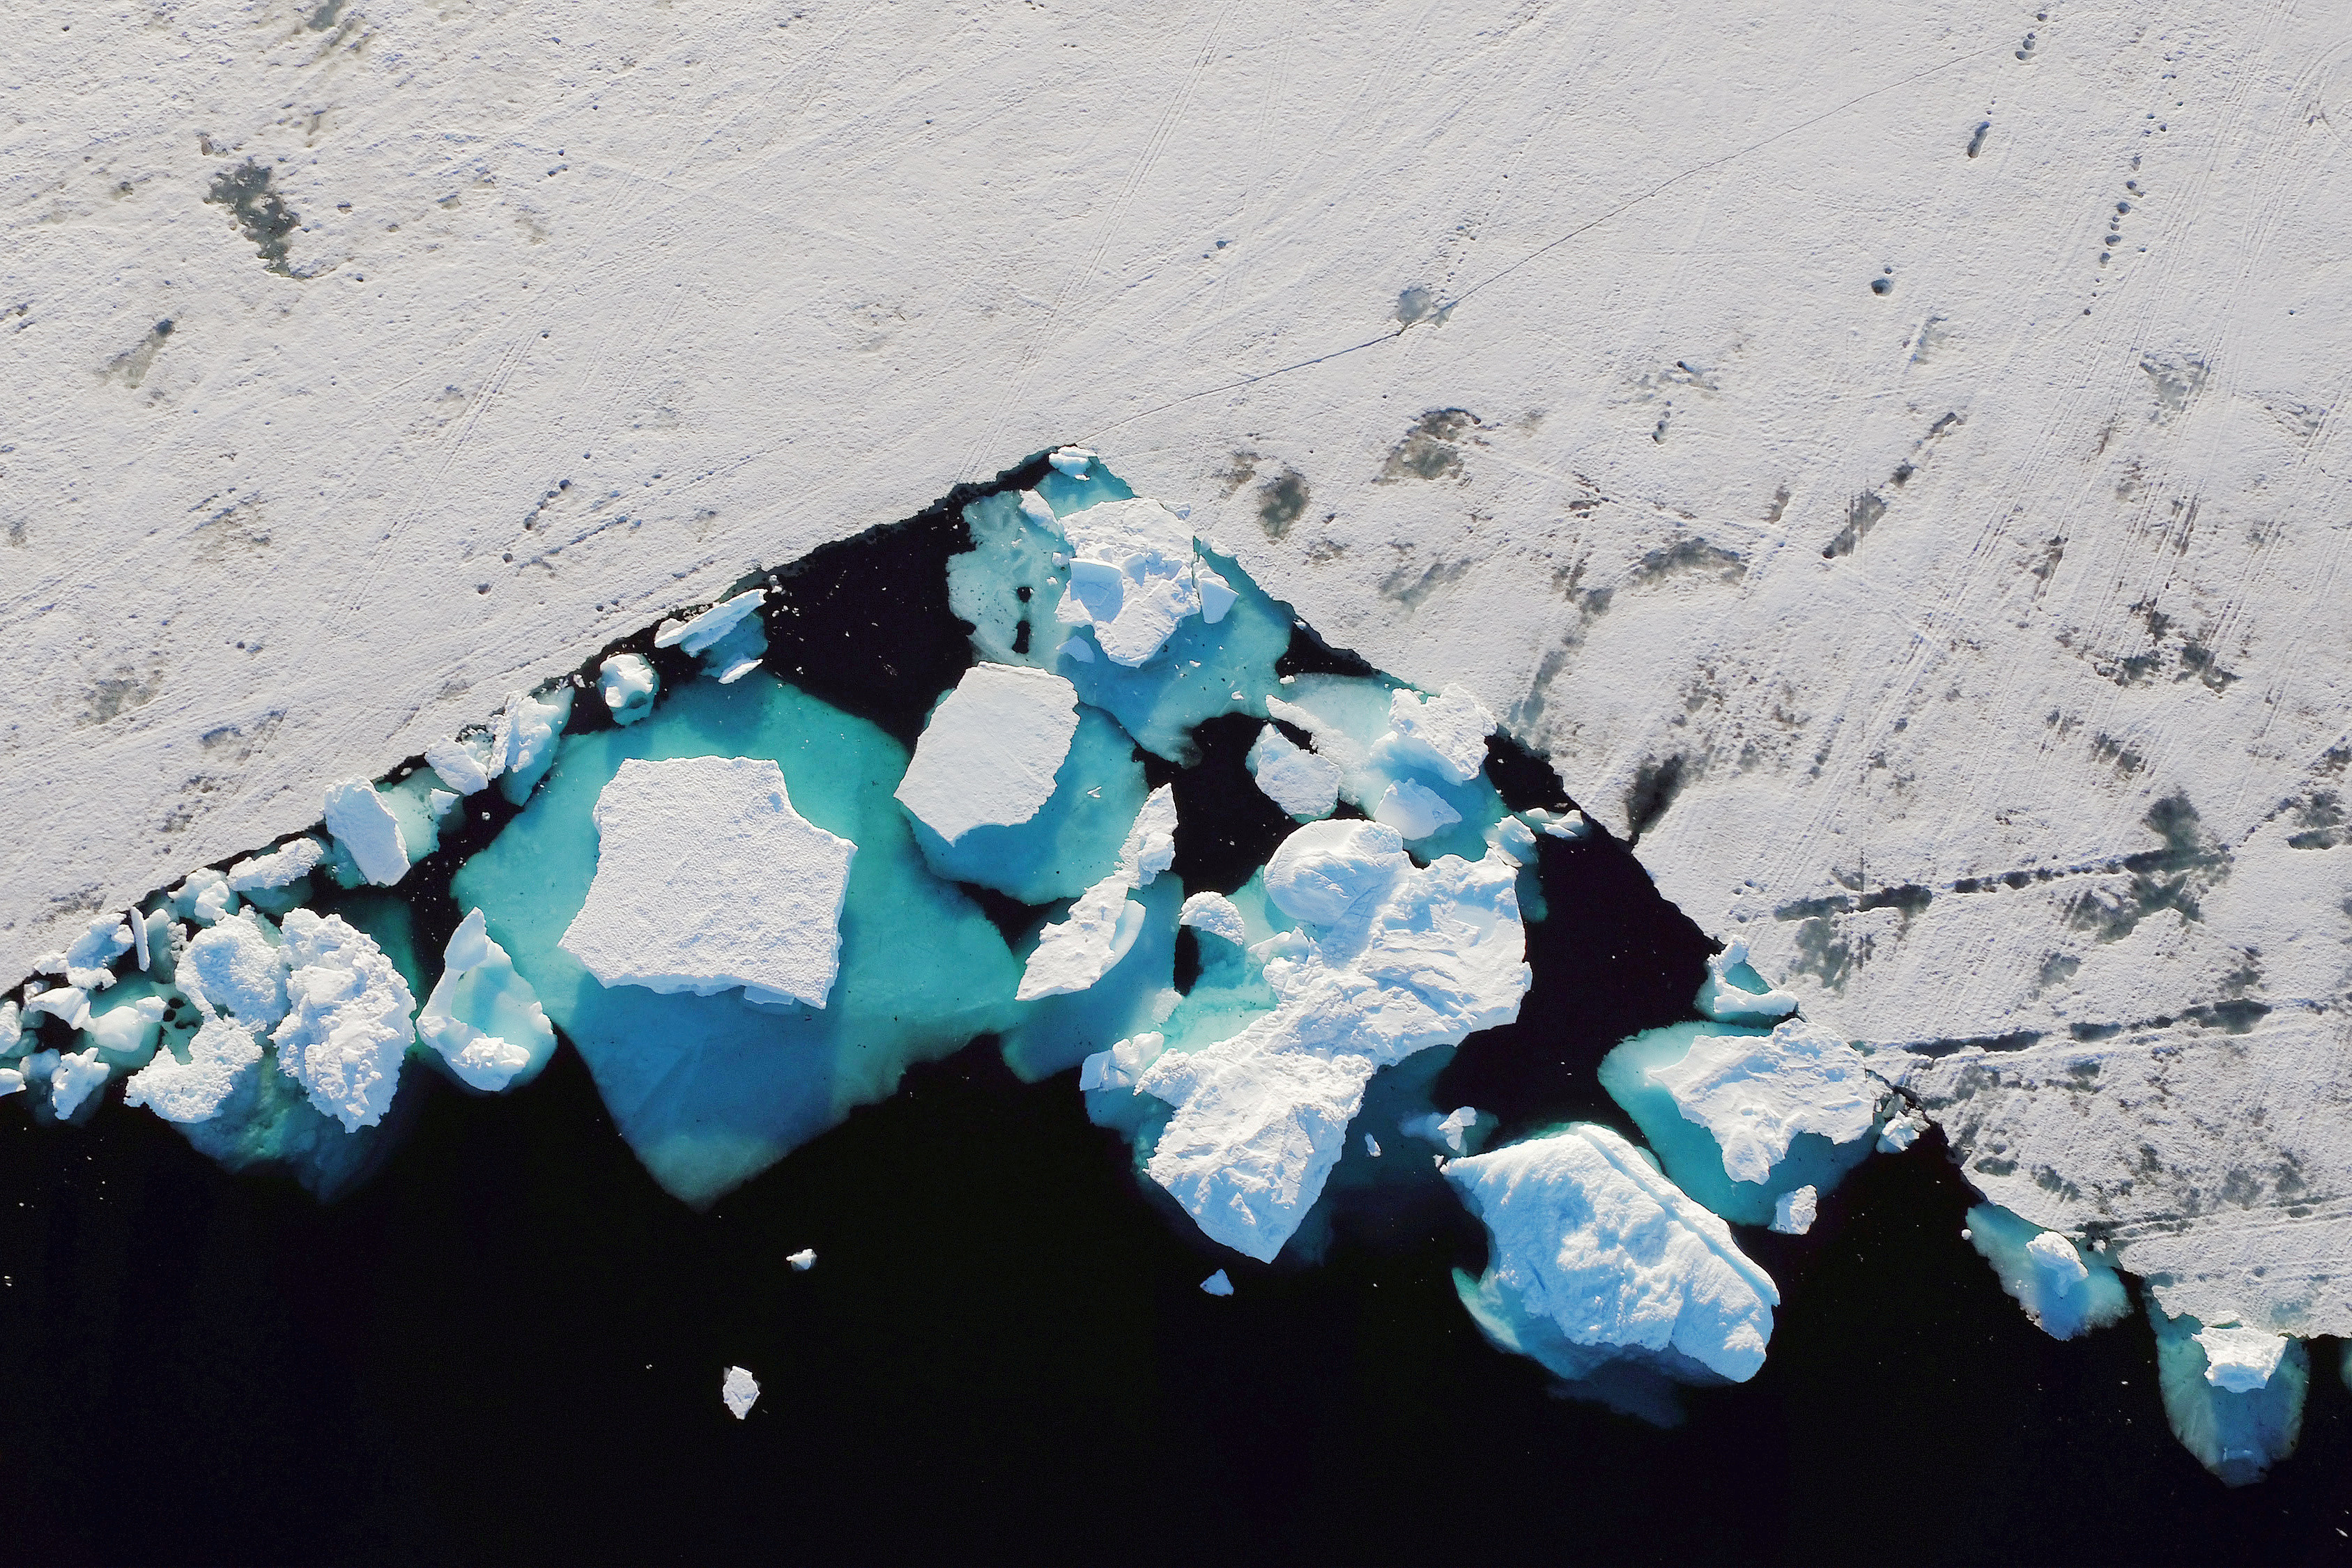 """An iceberg floats in a fjord near the town of Tasiilaq, Greenland, June 18, 2018. REUTERS/Lucas Jackson  SEARCH """"POY GLOBAL"""" FOR FOR THIS STORY. SEARCH """"REUTERS POY"""" FOR ALL BEST OF 2018 PACKAGES. TPX IMAGES OF THE DAY. - RC191470D0D0"""